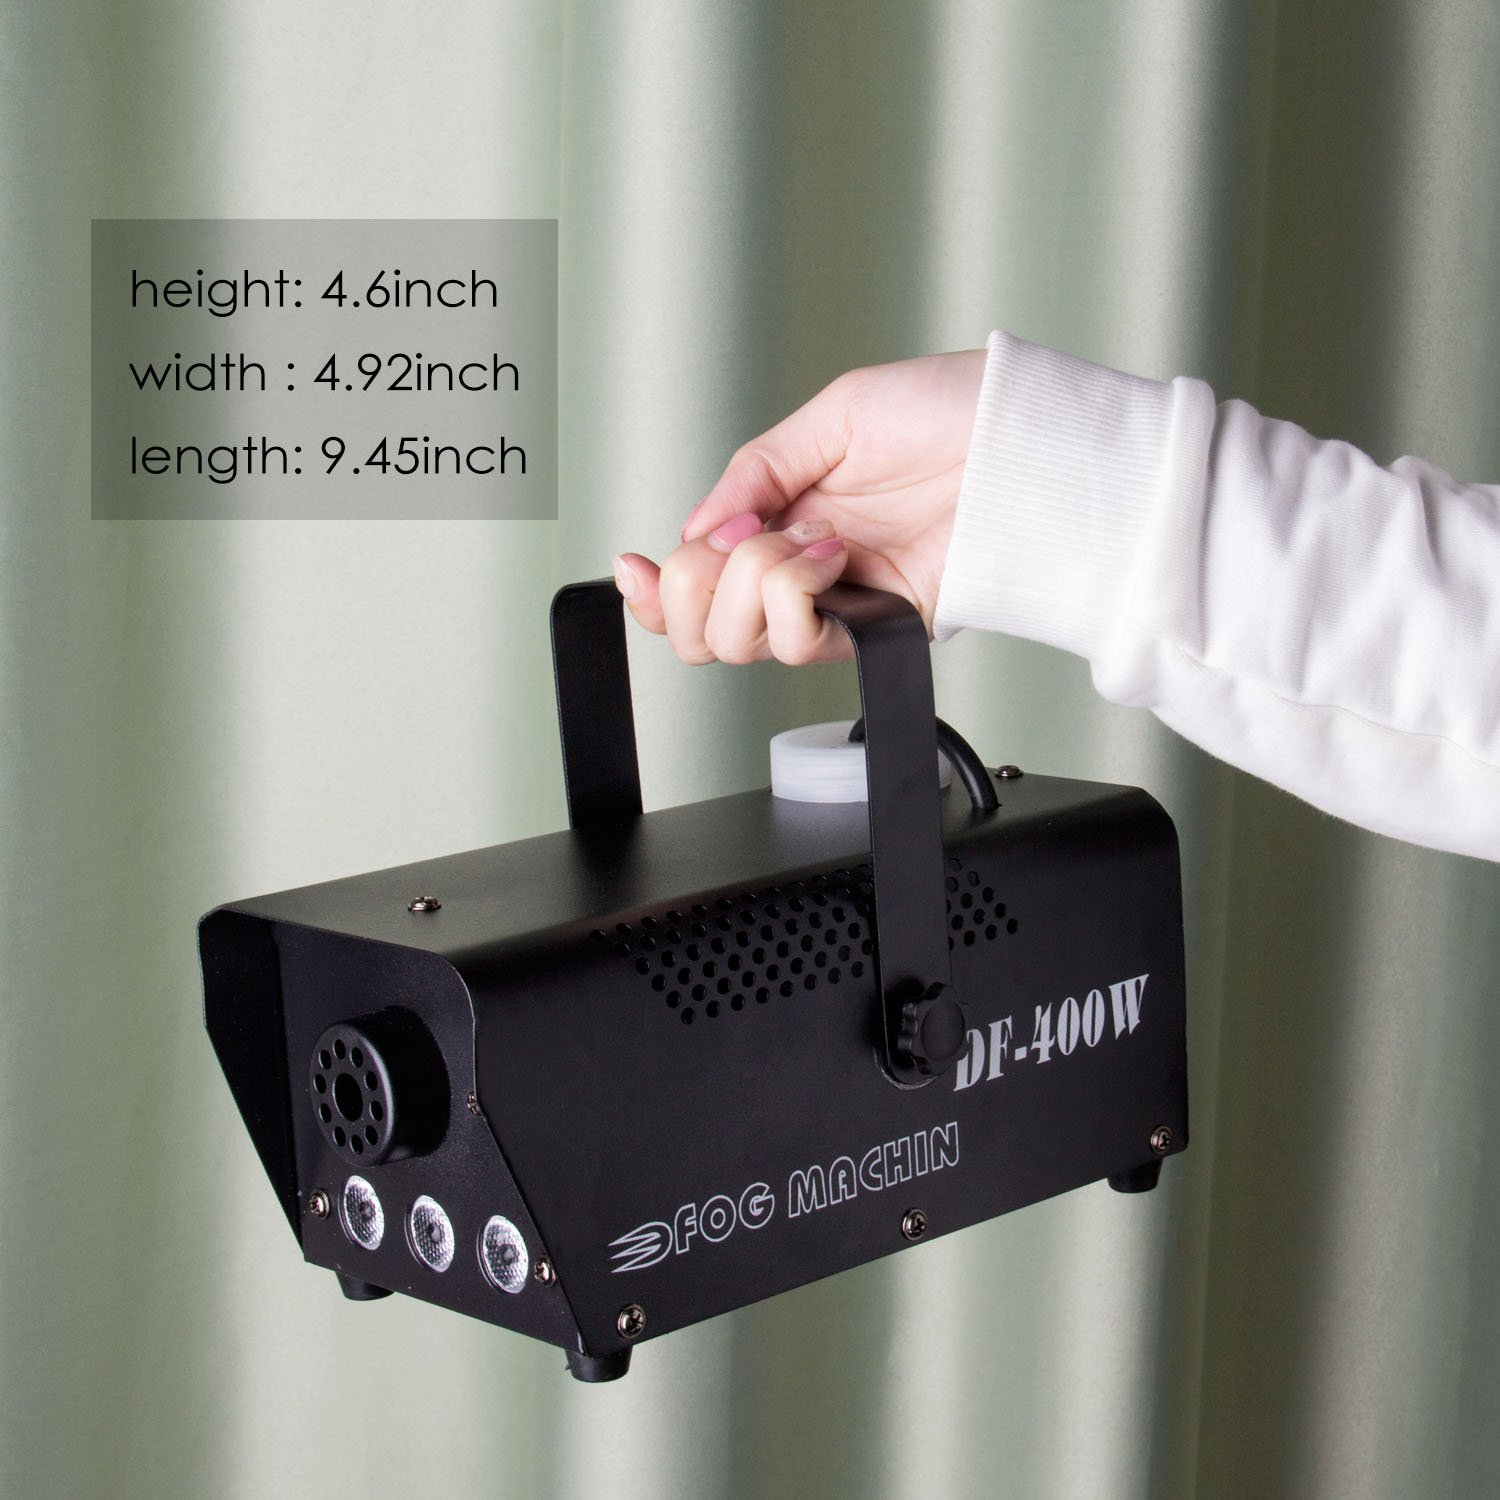 Fog Machine, Miric Smoke Machine Portable with LED Lights Equipped with Wired and Wireless Remote Control for Party, Christmas, Halloween and Weddings (400W) by Miric (Image #6)